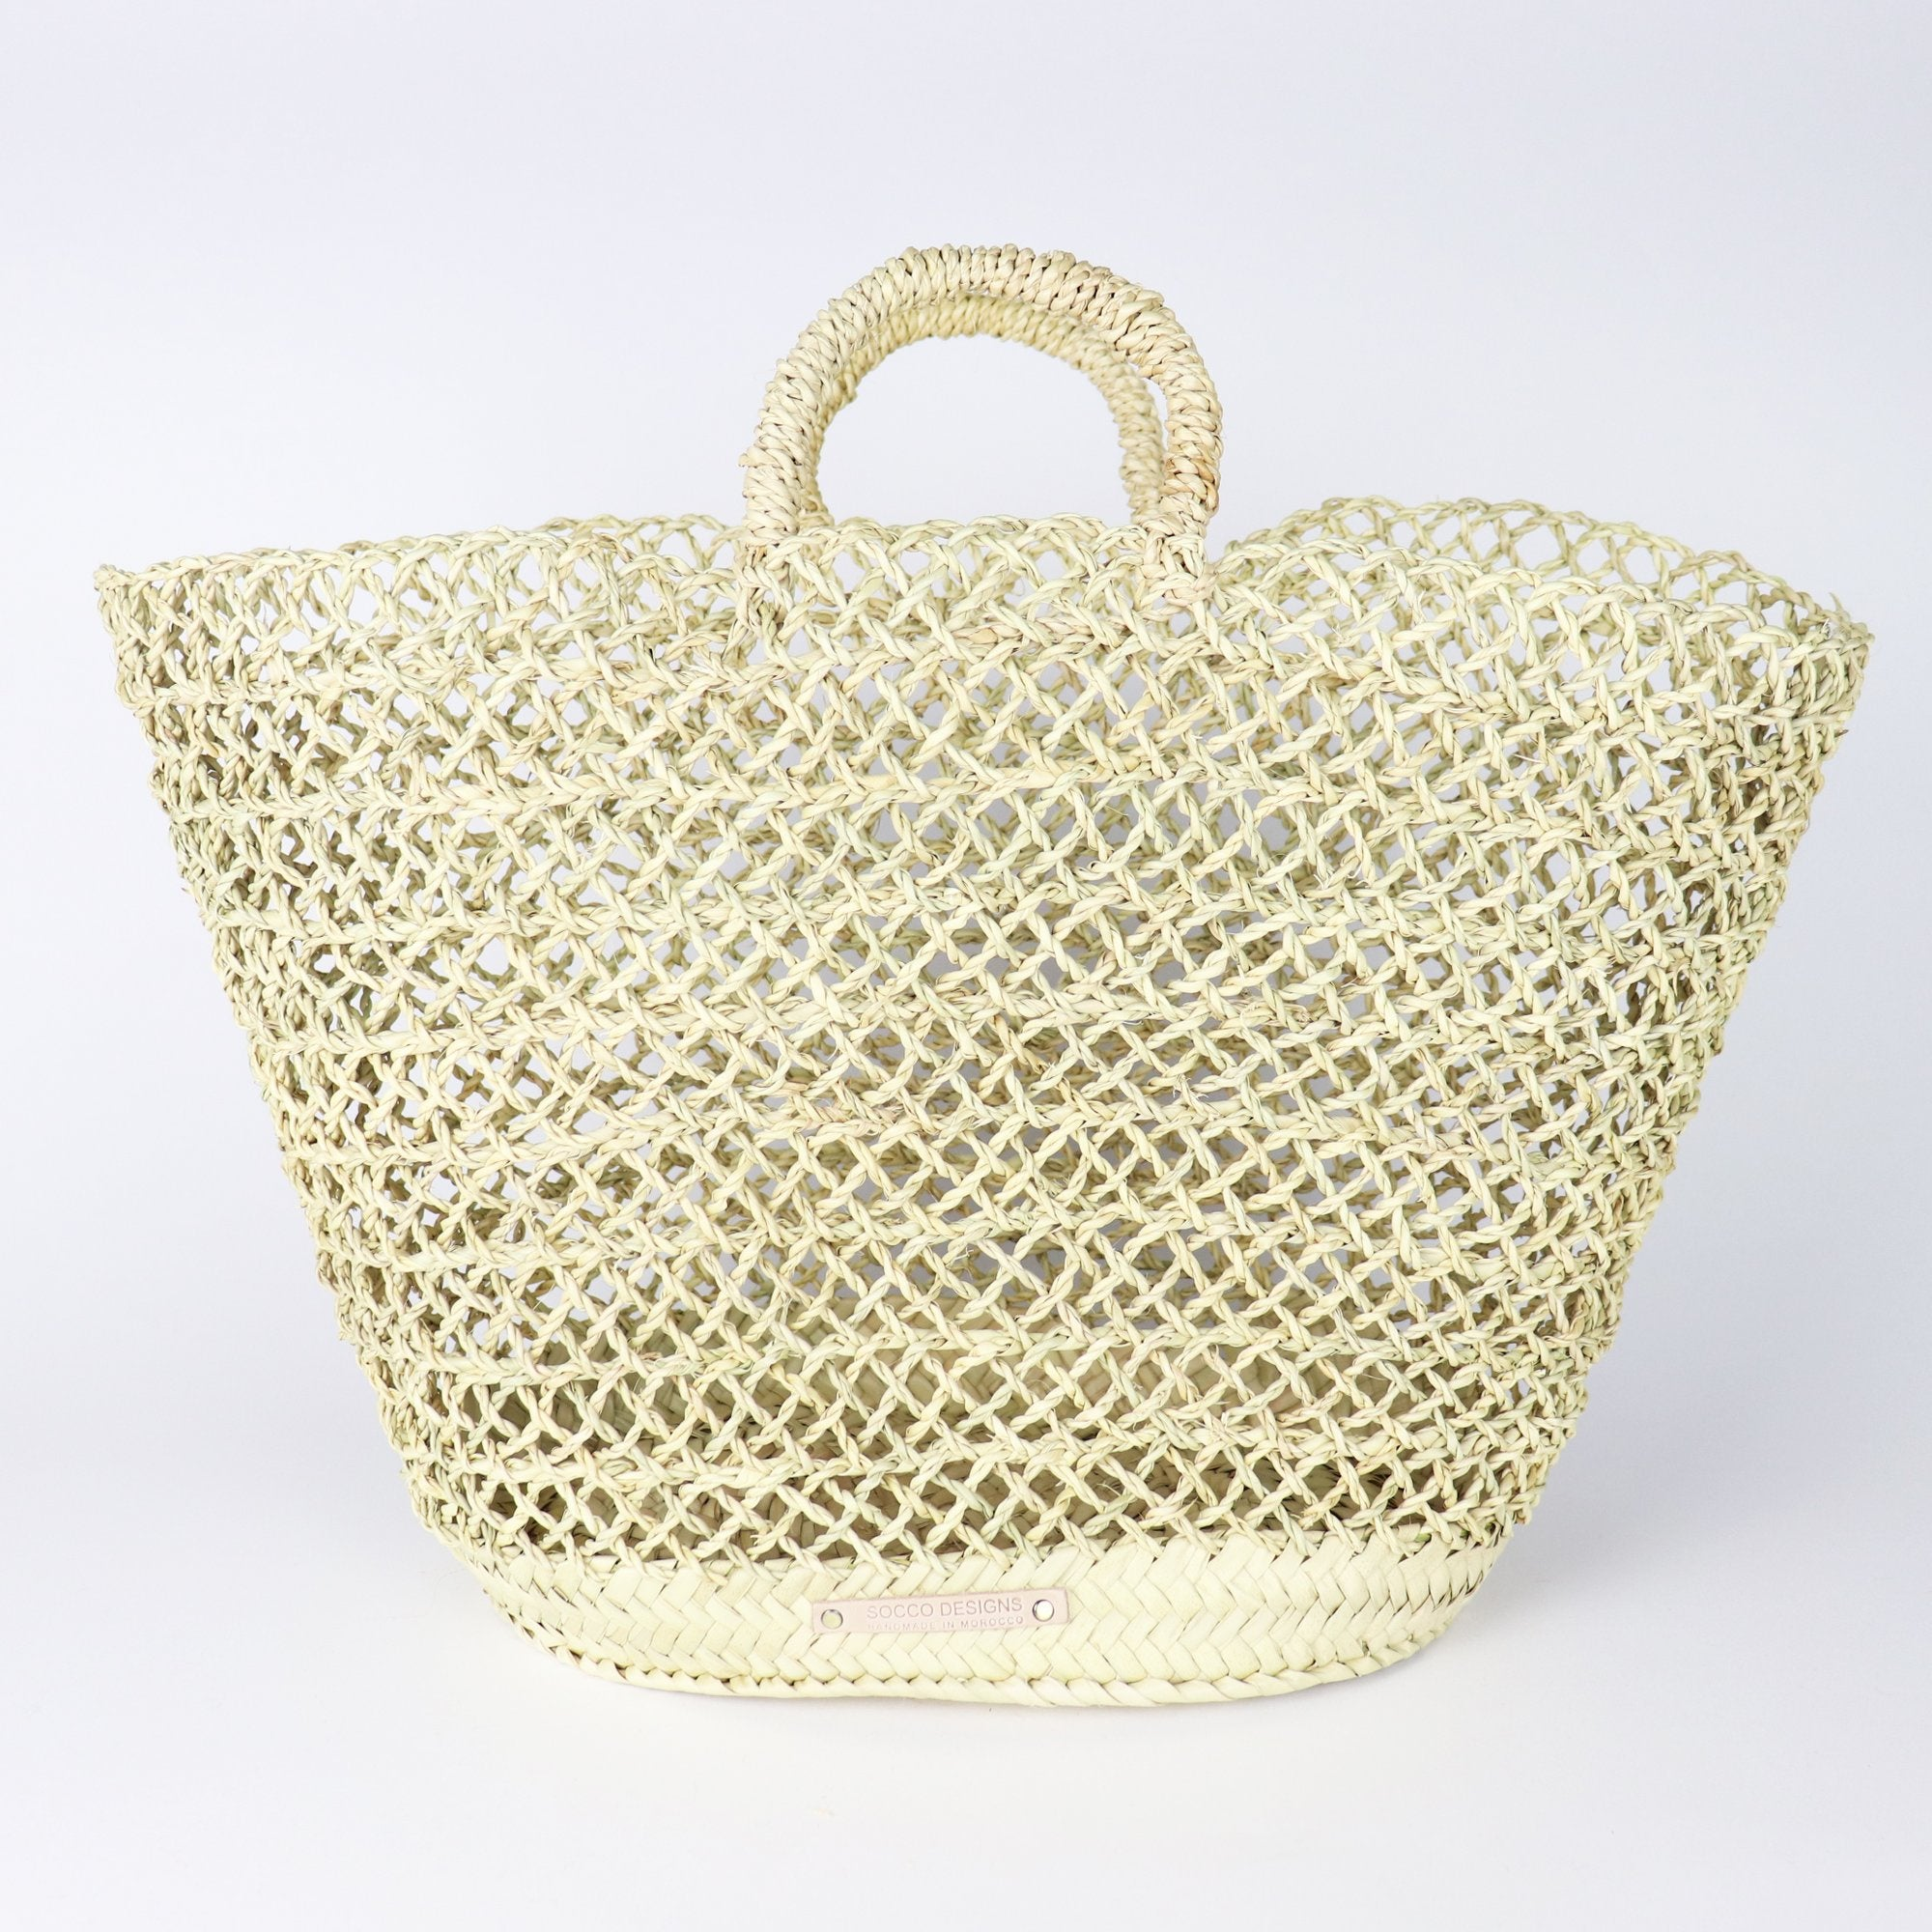 SOCCO DESIGNS - ALBUFEIRA FRENCH BASKET